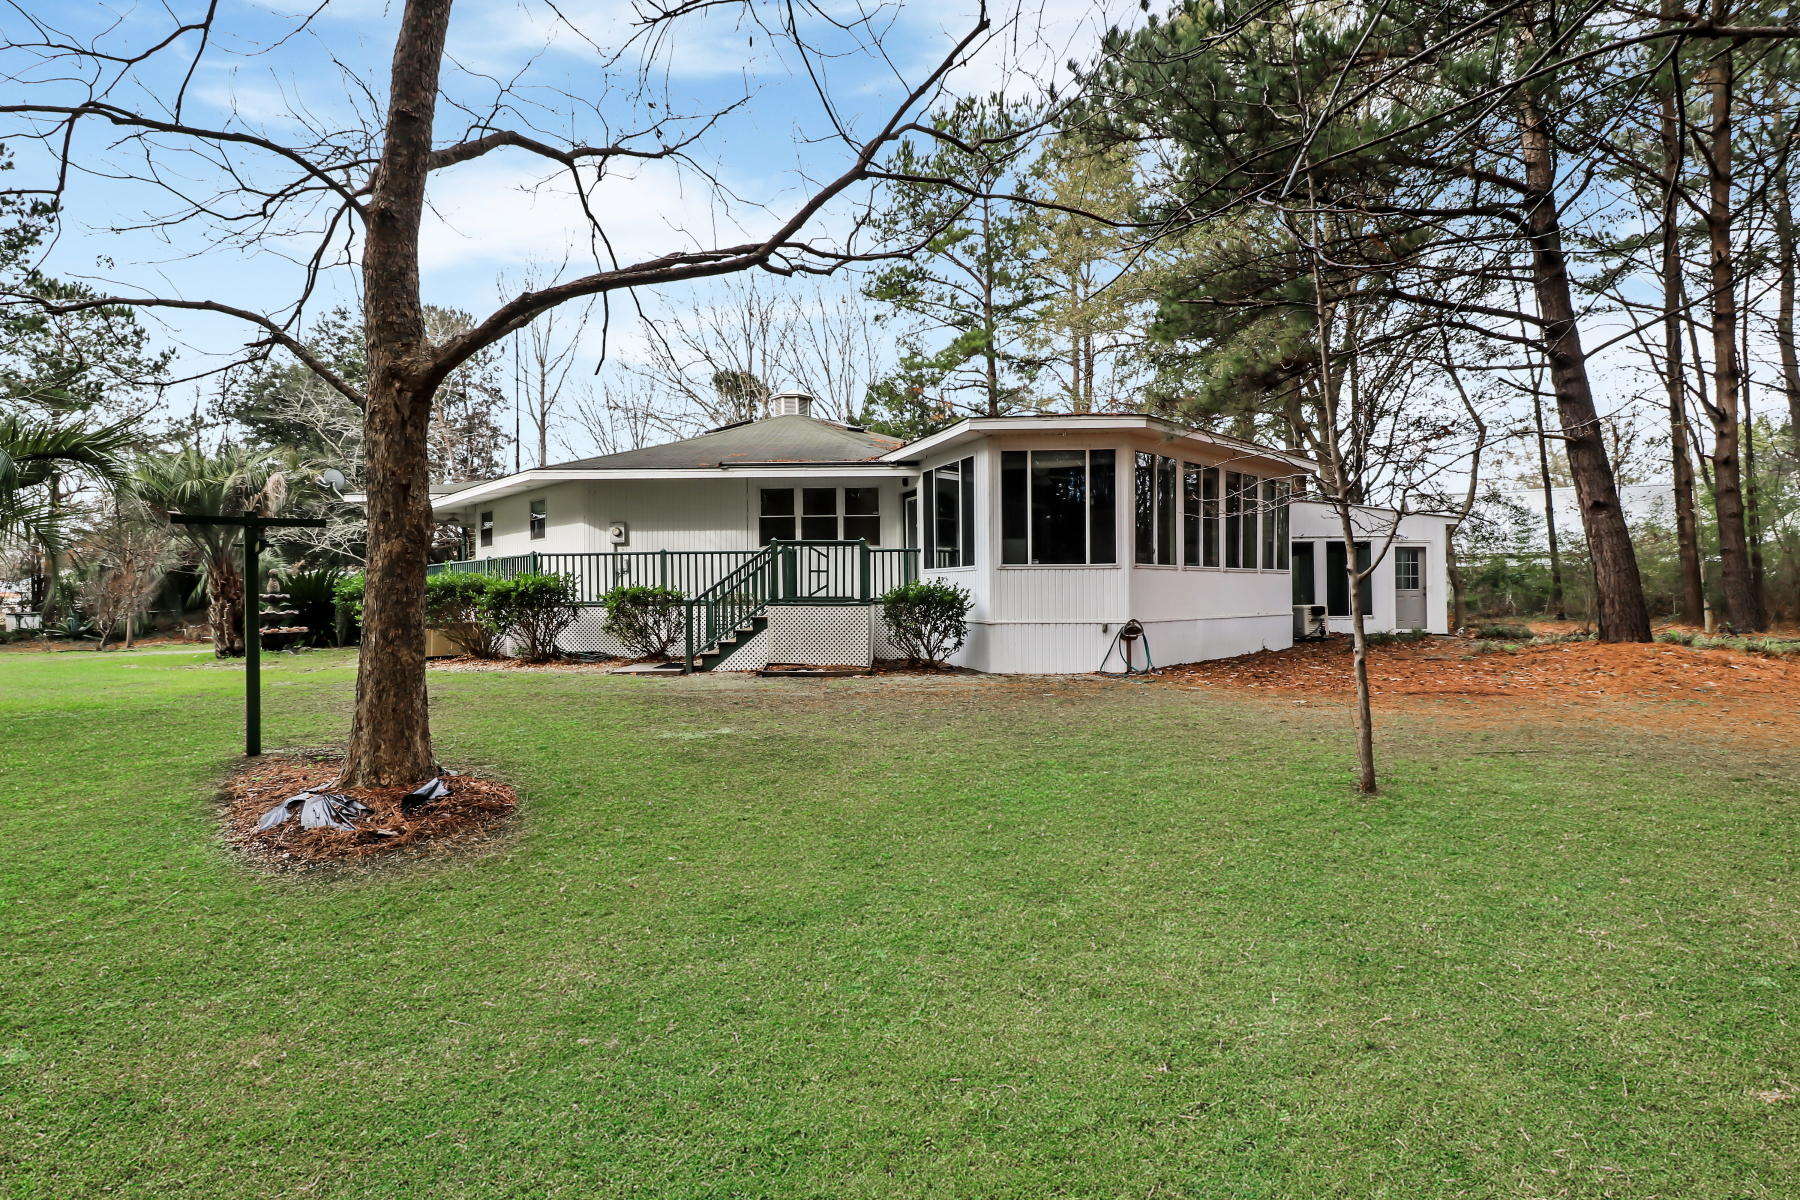 Plantation II Homes For Sale - 141 Meredith, Eutawville, SC - 25